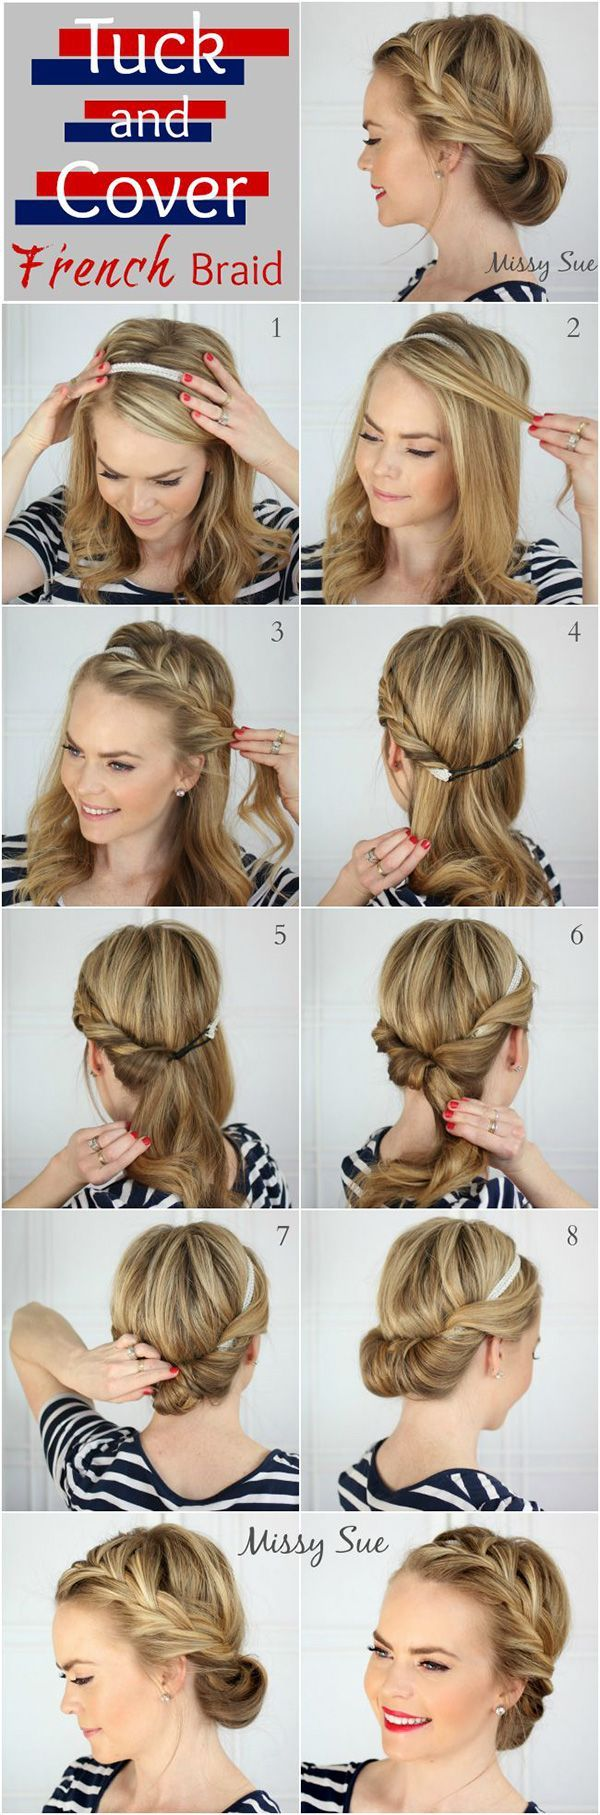 10 Easy Hairstyles For Bangs To Get Them Out Of Your Face - http://1pic4u.com/2015/09/03/10-easy-hairstyles-for-bangs-to-get-them-out-of-your-face/